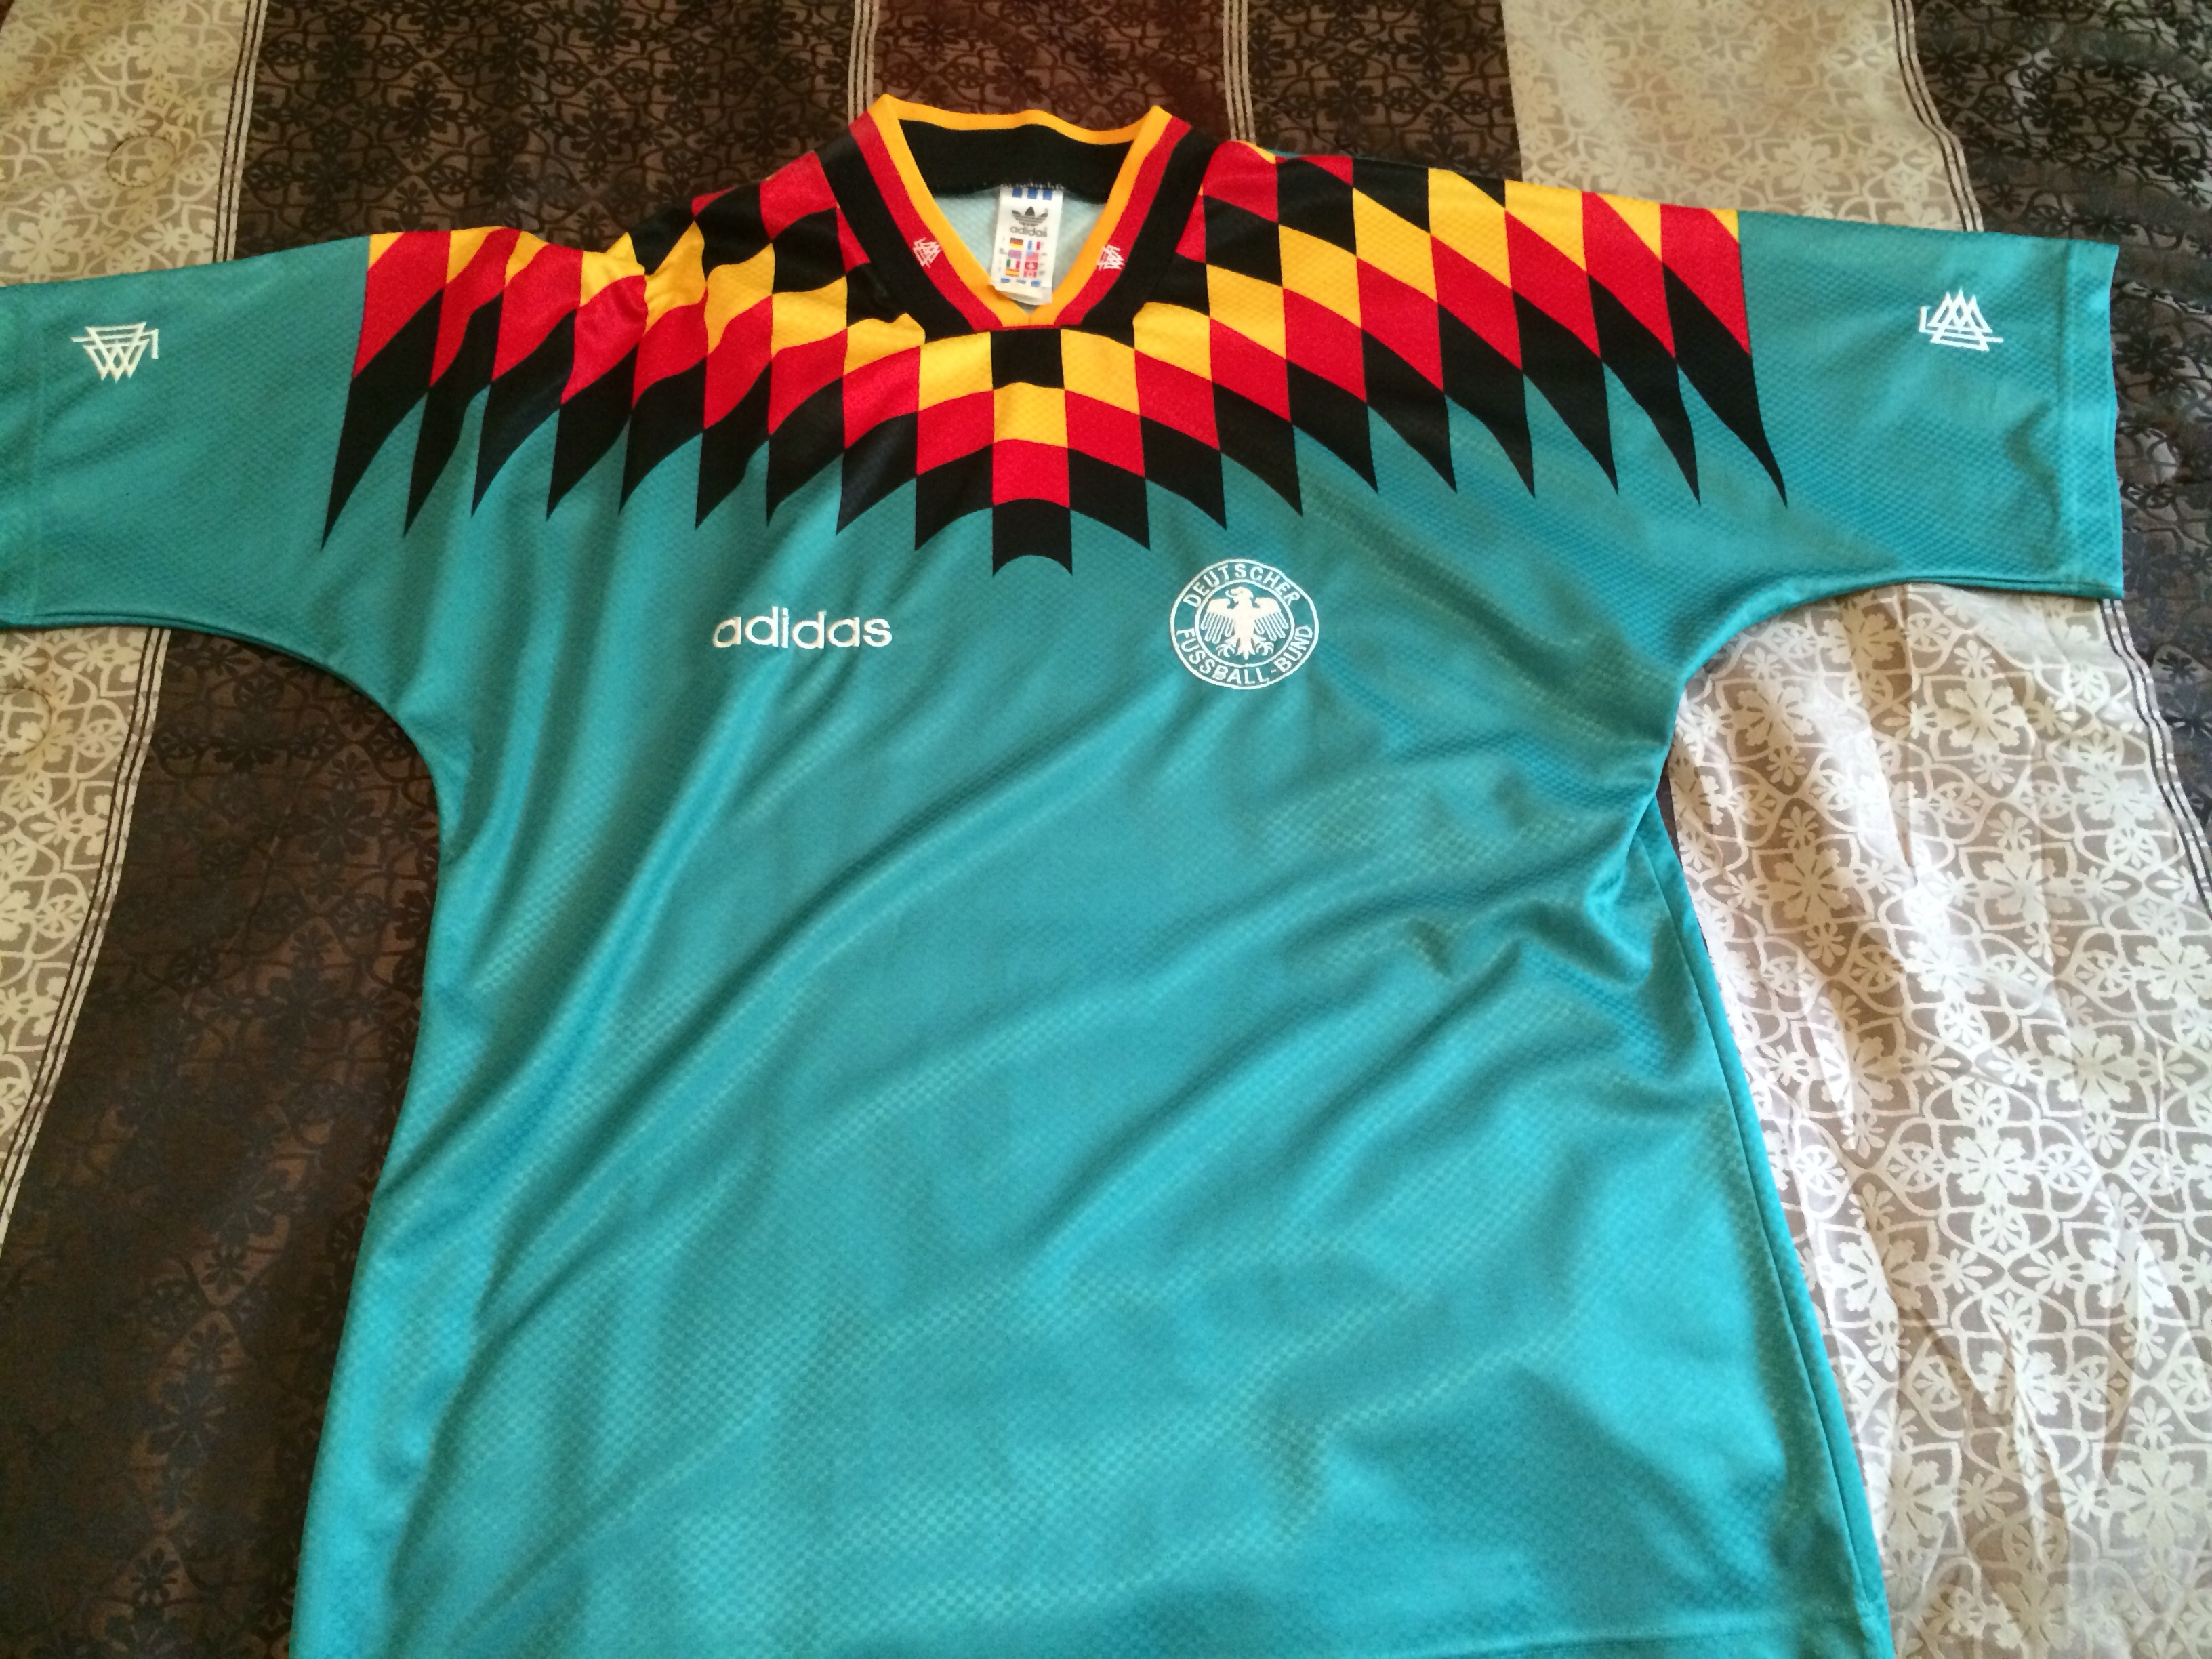 73afd0ab4b4 Adidas Original Vintage 1994 World Cup West Germany Soccer Jersey ...